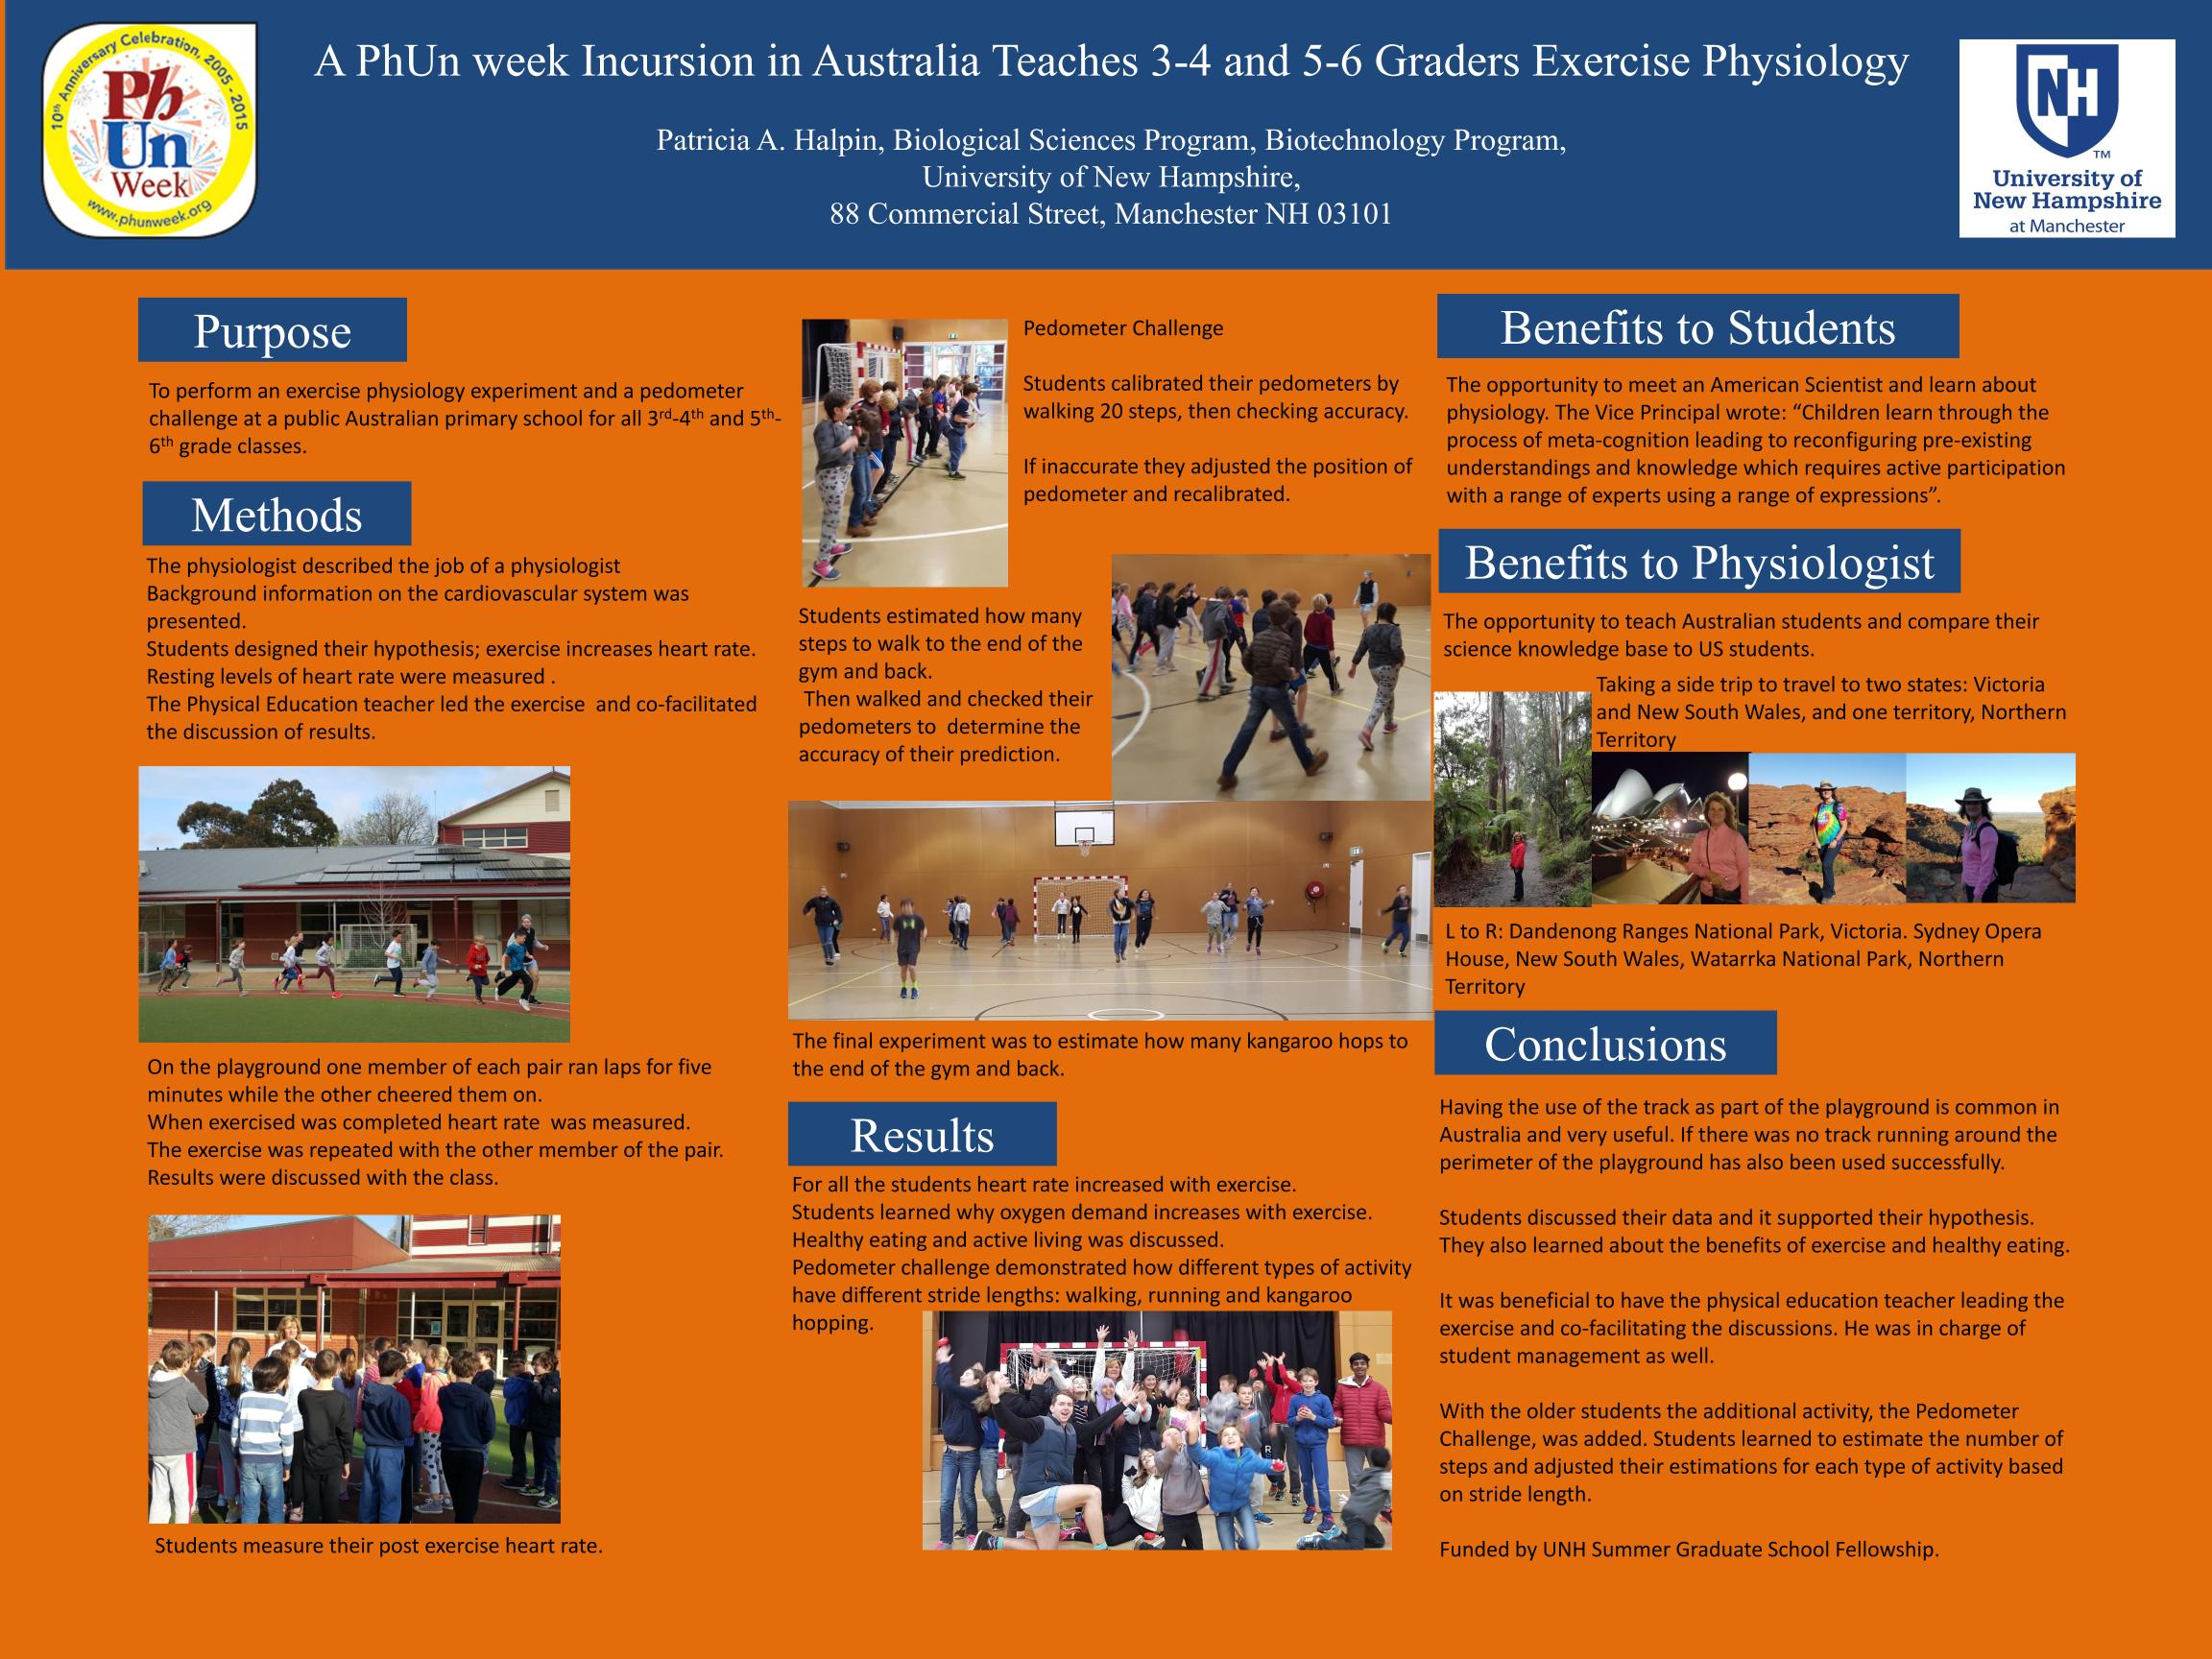 Lifescitrc search results a phun week incursion in australia teaches 3 4 and 5 6 graders exercise physiology phun week poster session eb16 patricia halpin university of new nvjuhfo Images